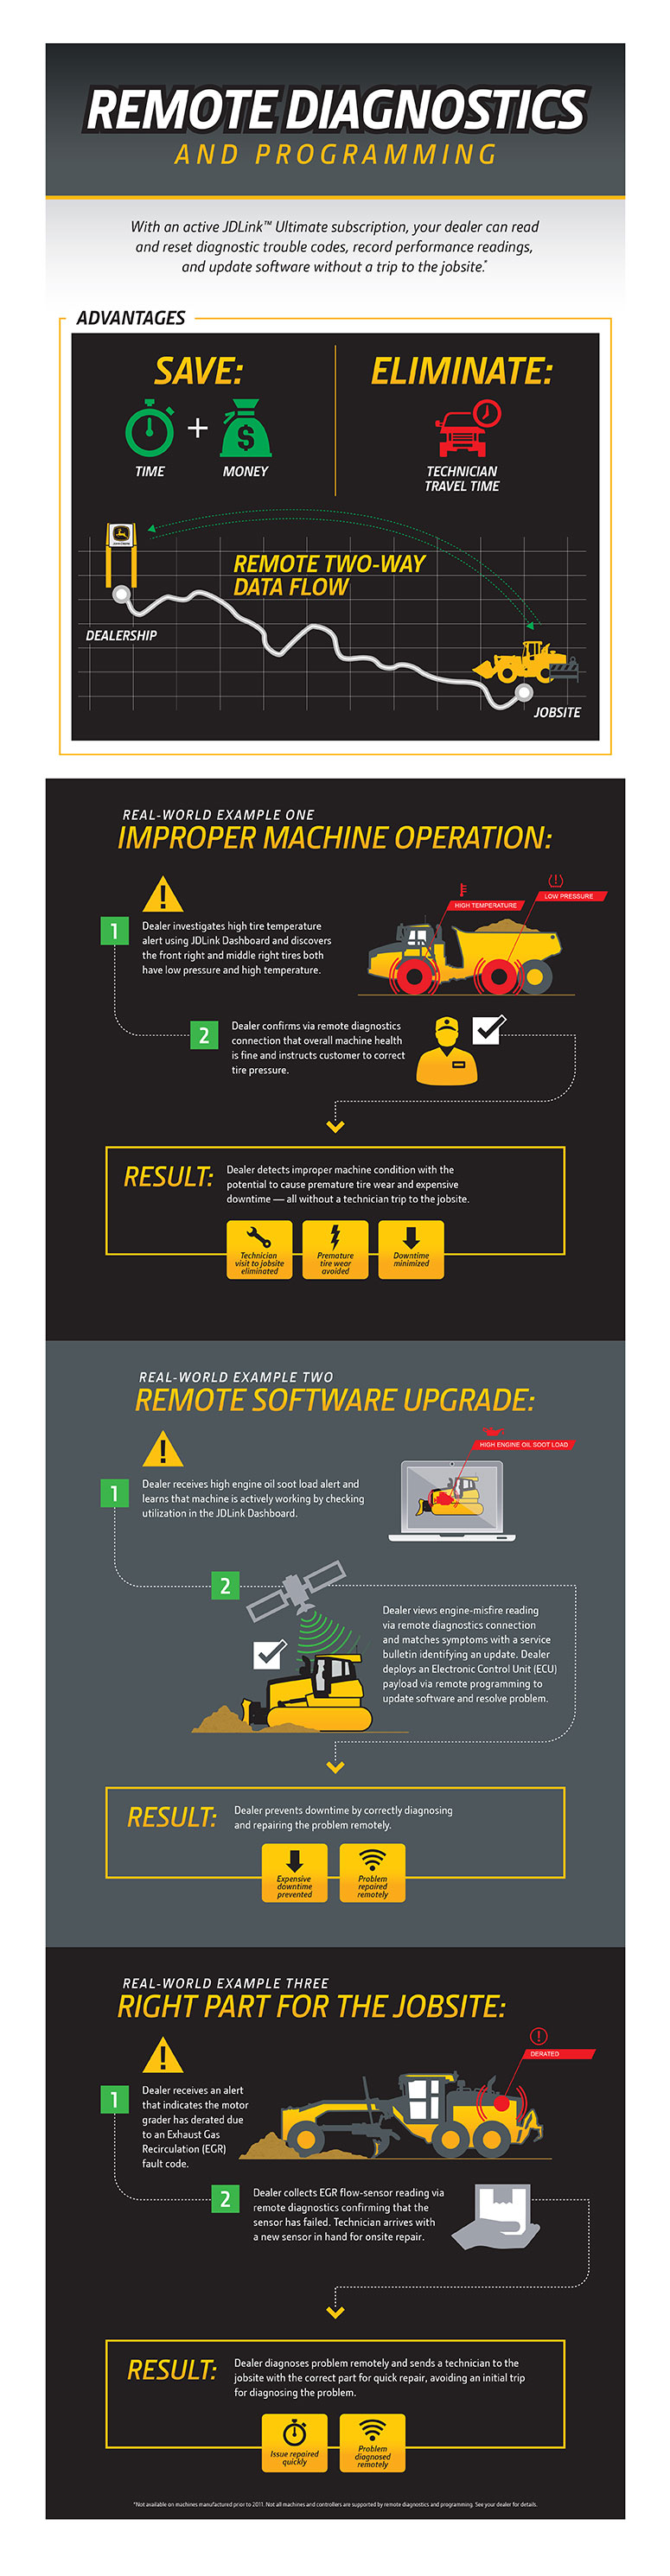 remote diagnostics infographic